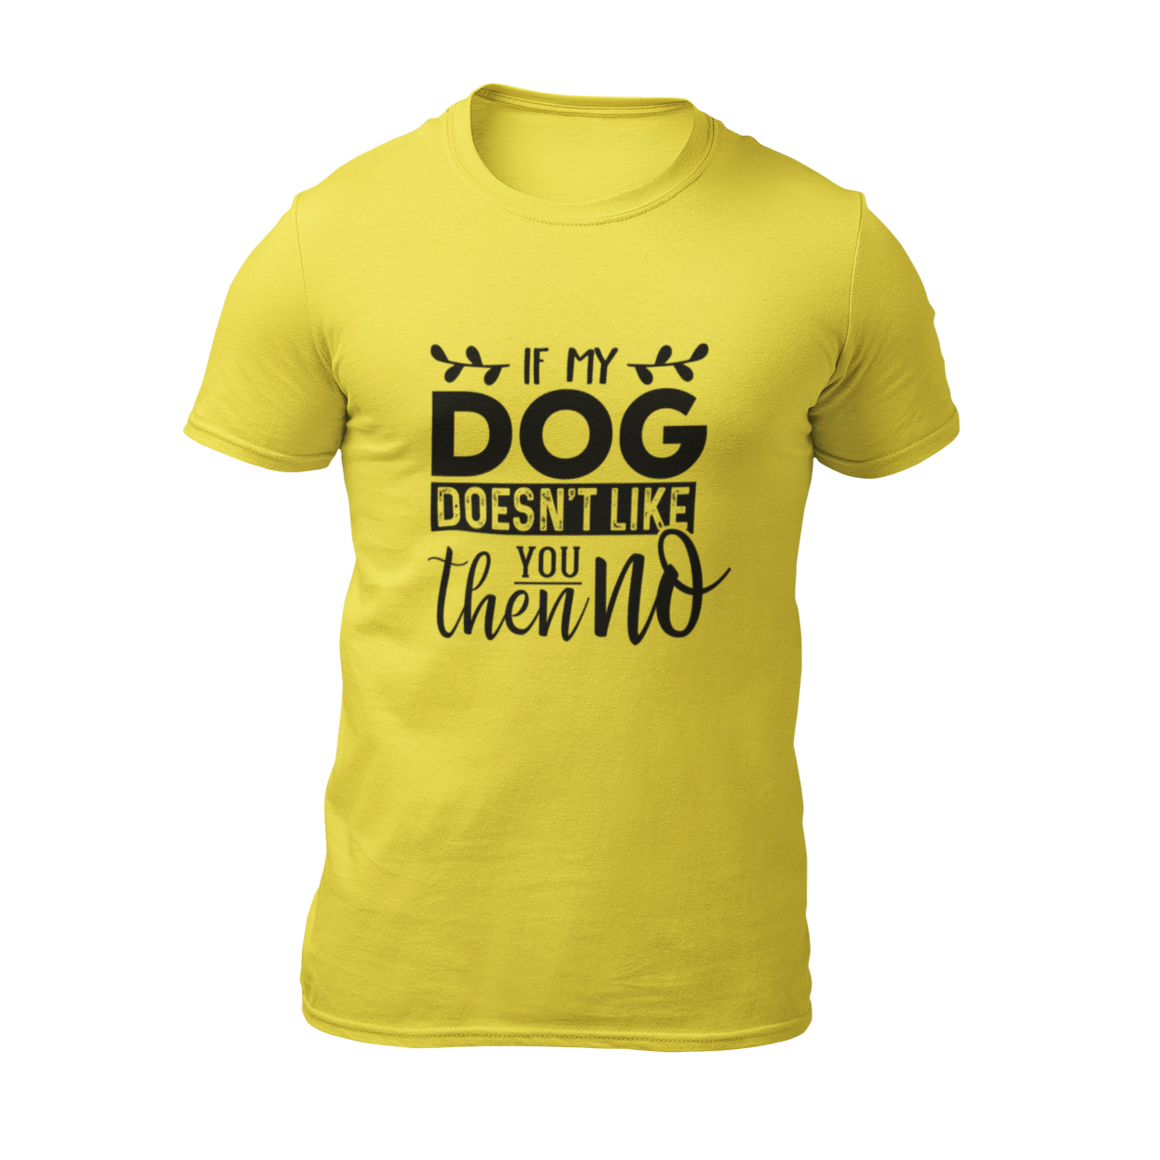 Dog Doesn't Like You - Yellow